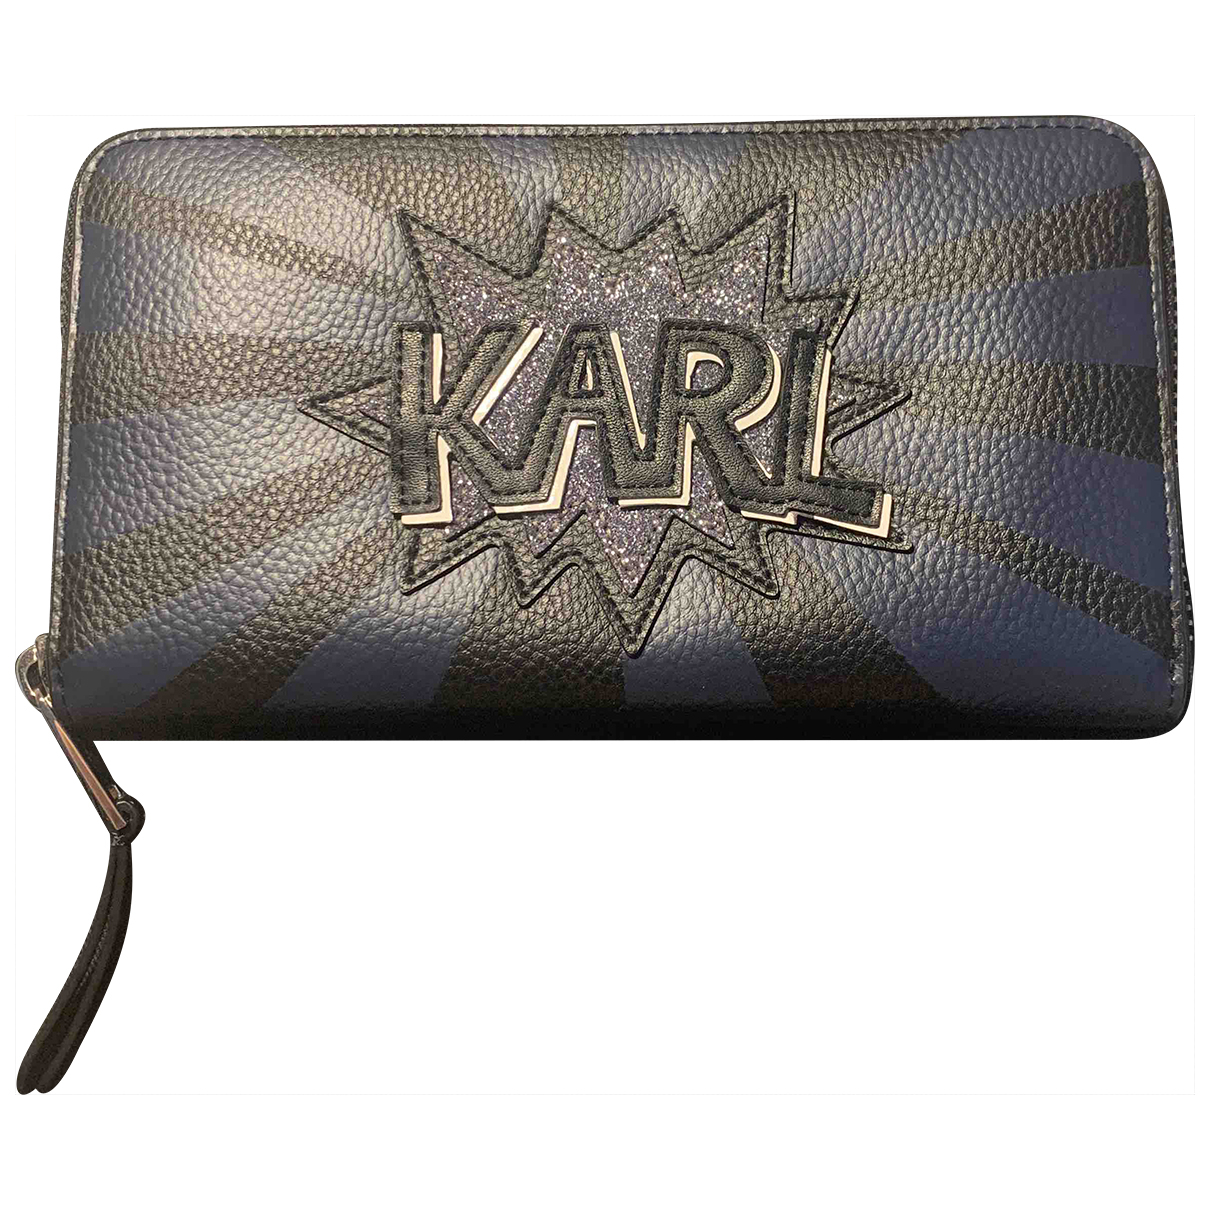 Karl Lagerfeld N Black Leather Purses, wallet & cases for Women N